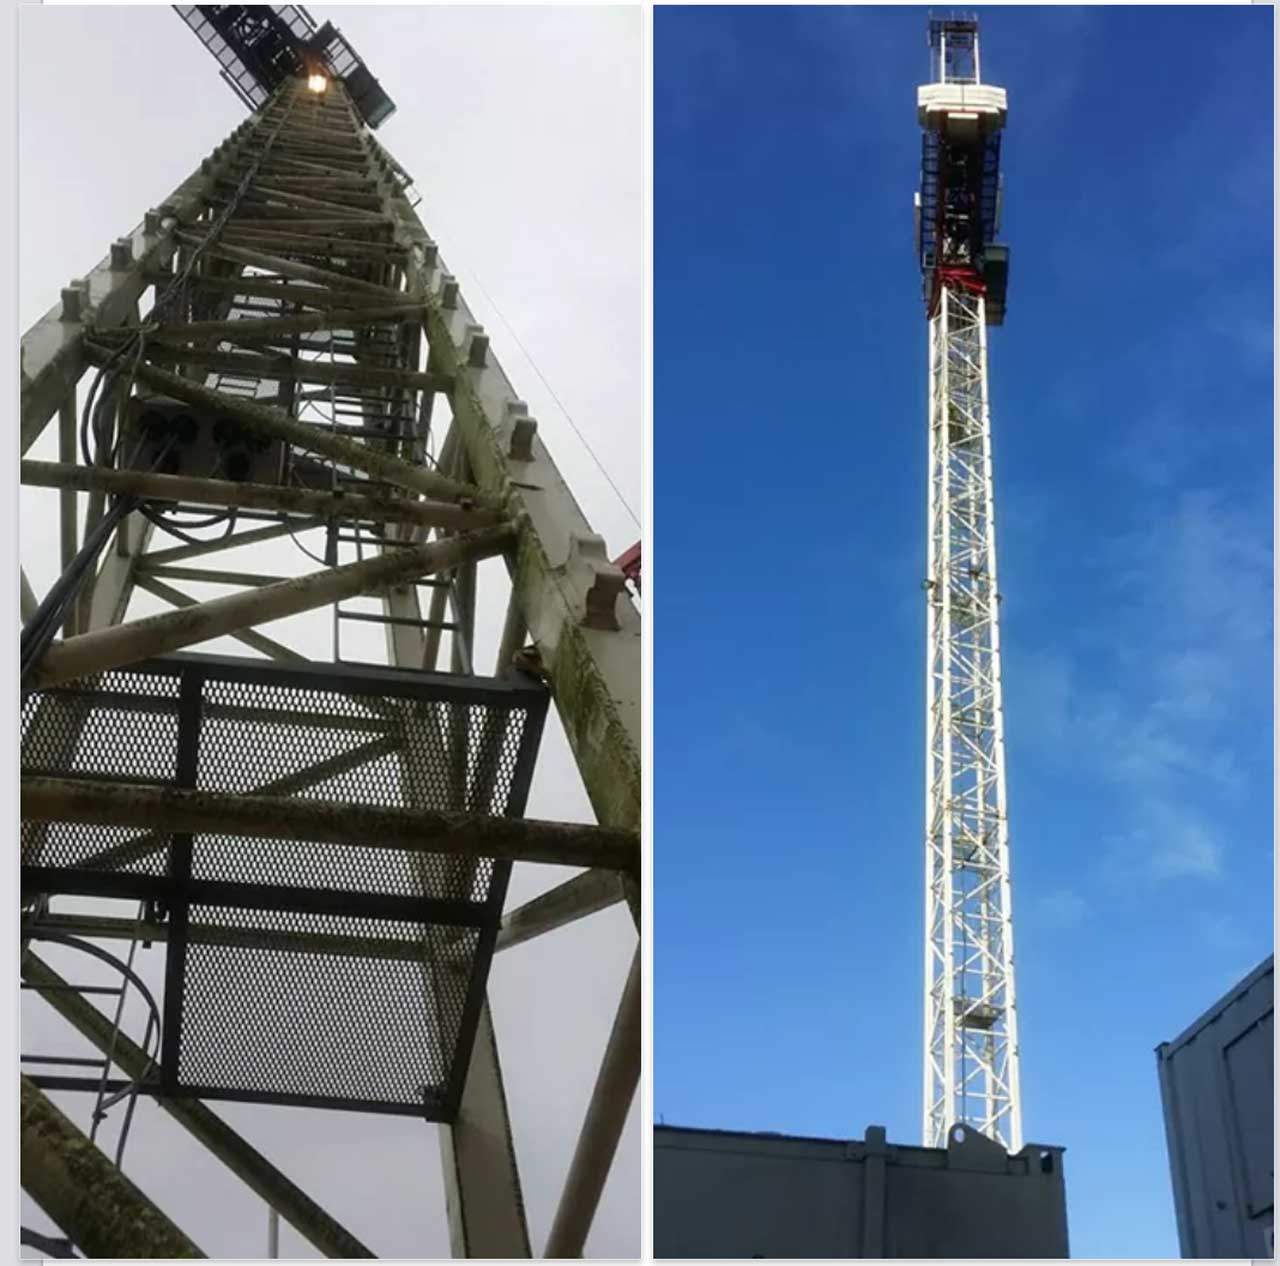 a before and after shot of a high level tower crane after it has been pressure washed showing the excellent result it gave using rope access techniques